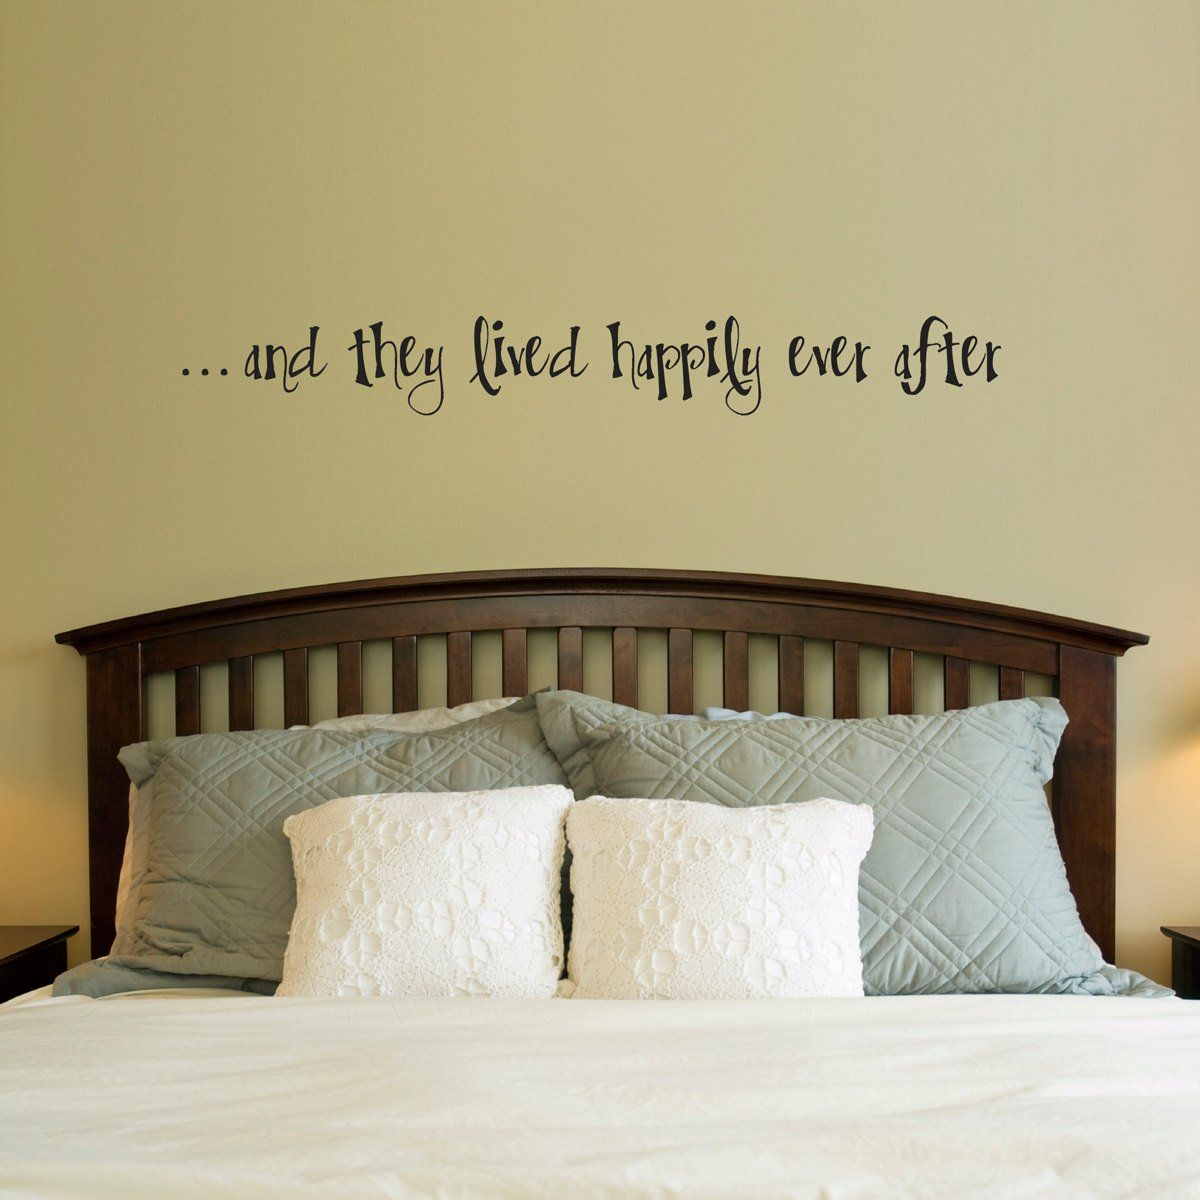 Happily ever after wall decal couple bedroom decor decal quote